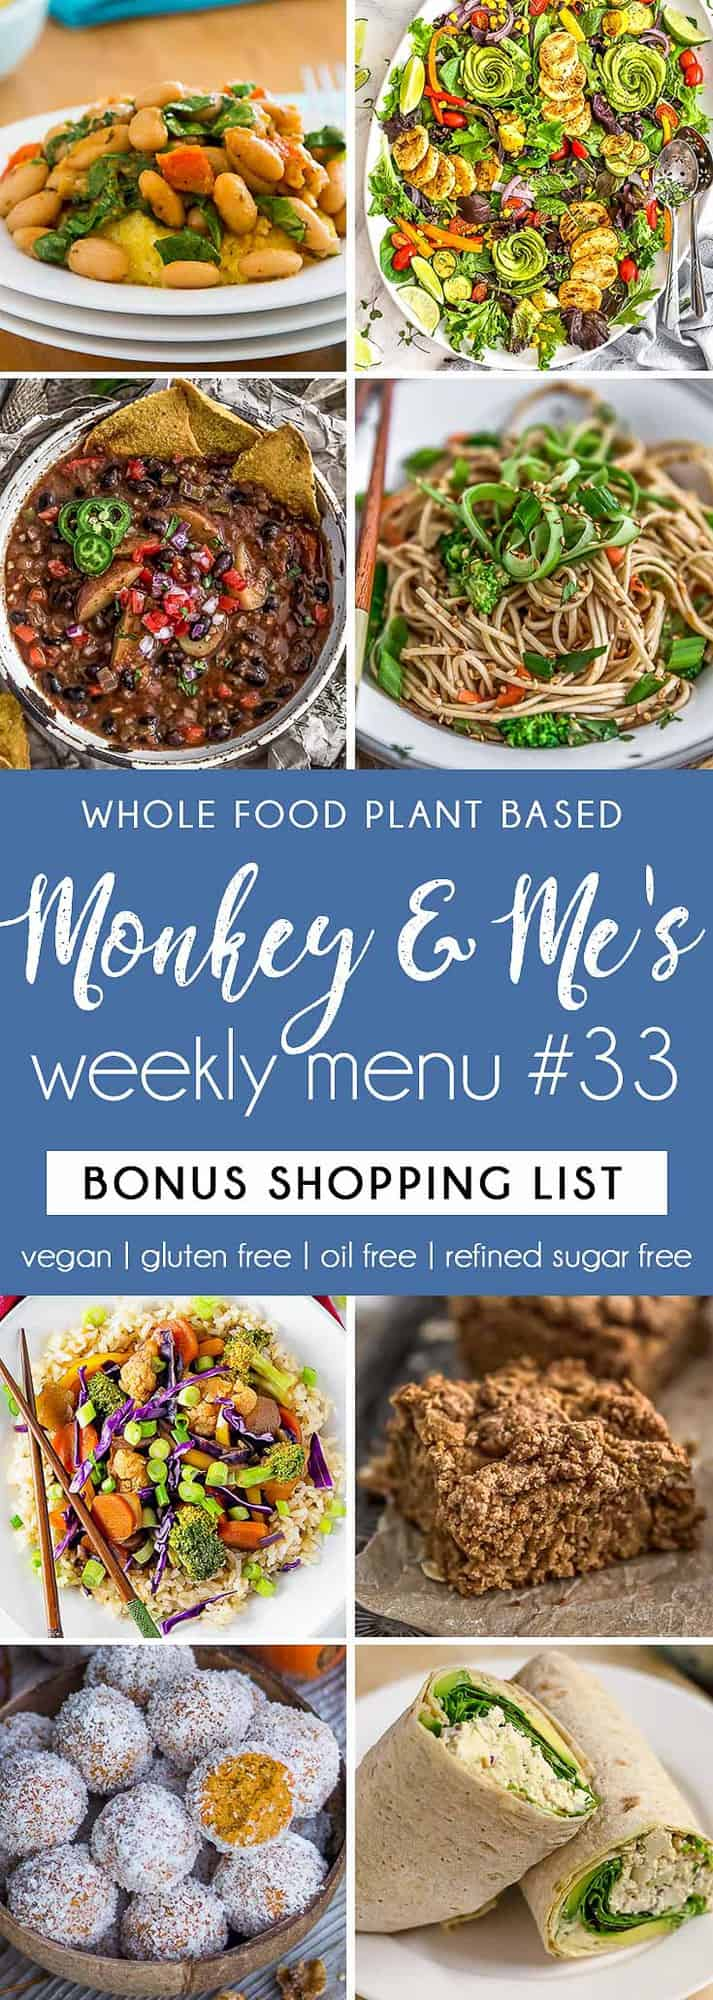 Monkey and Me's Menu 33 featuring 8 recipes